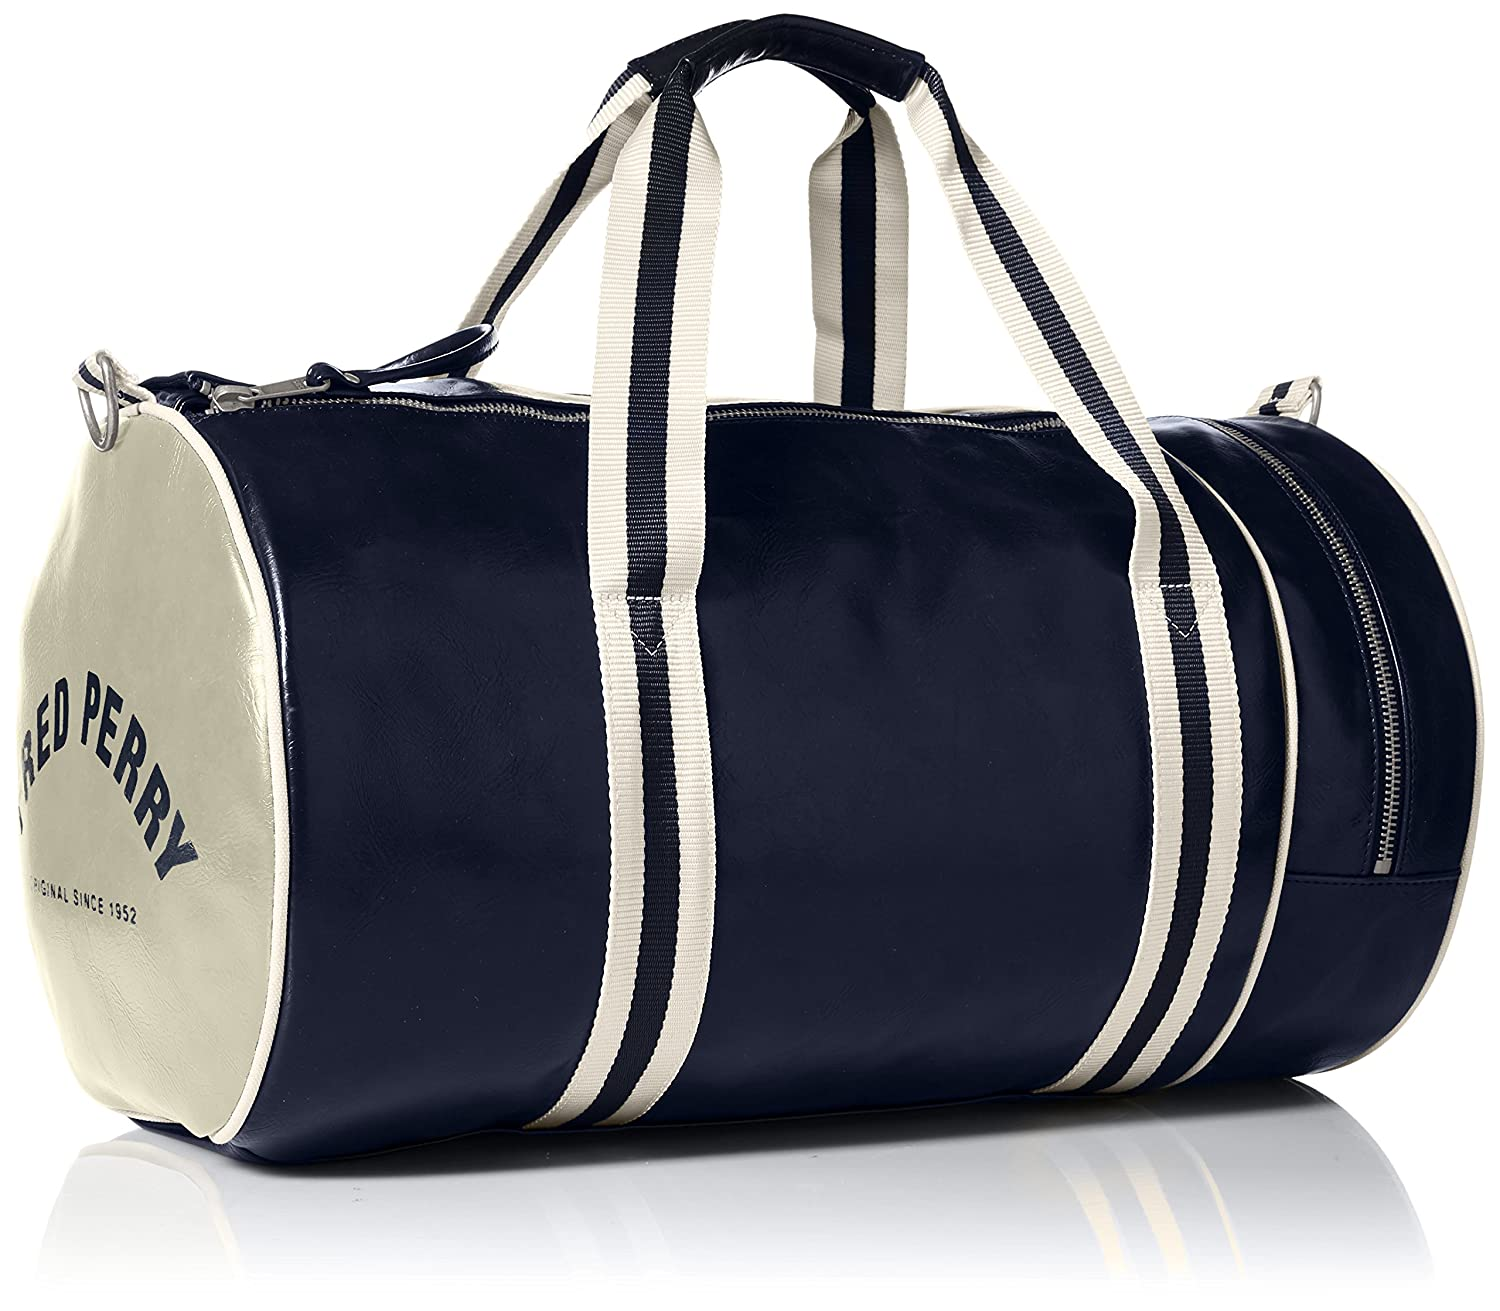 4f22b47cf4b0 Amazon.com  Fred Perry Men s Classic Barrel Bag  Clothing